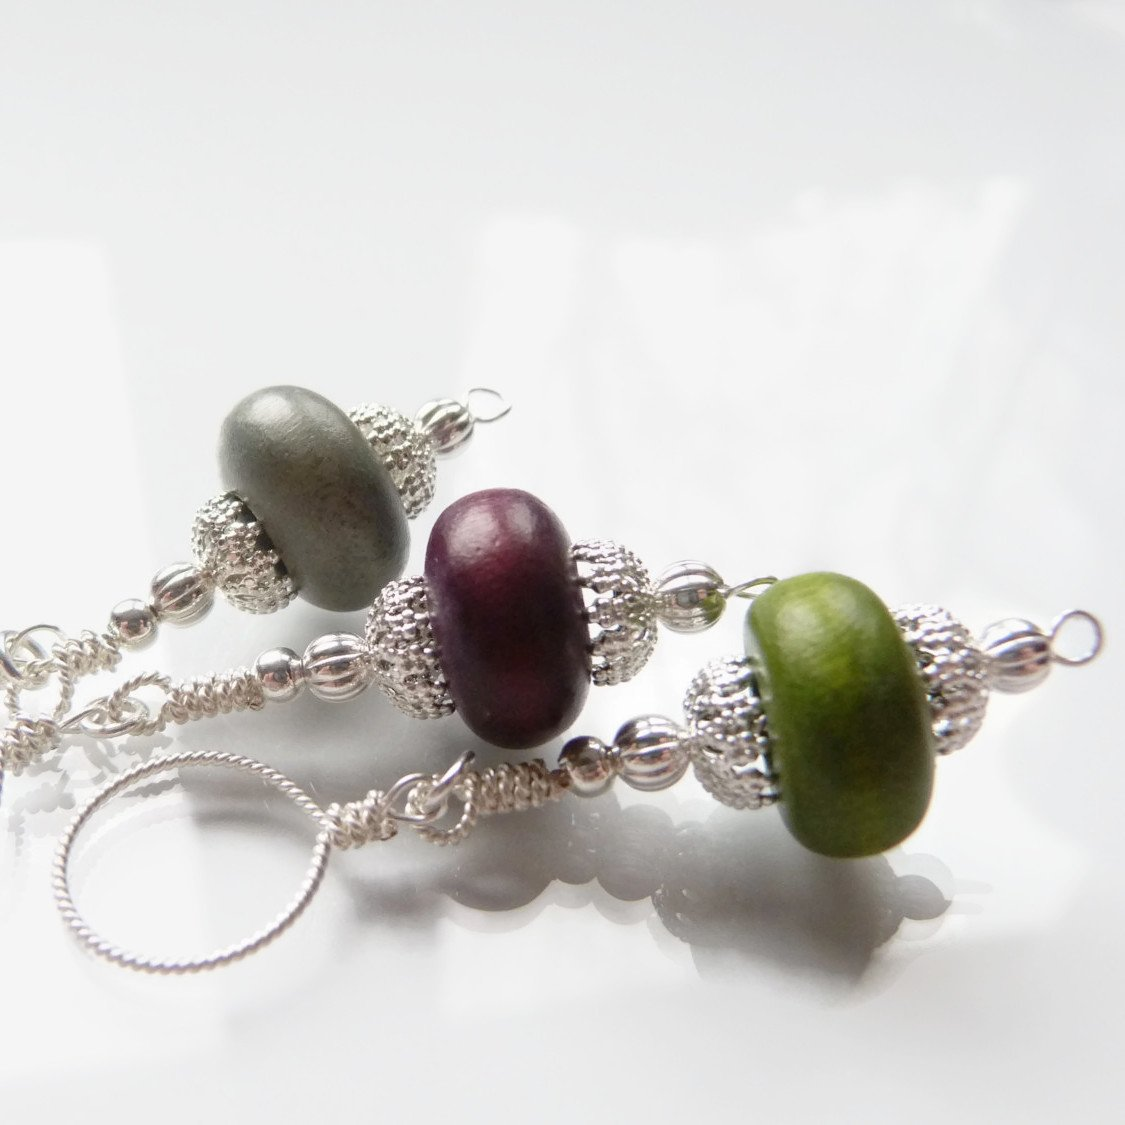 Faerie Wood Knitting Stitch Marker